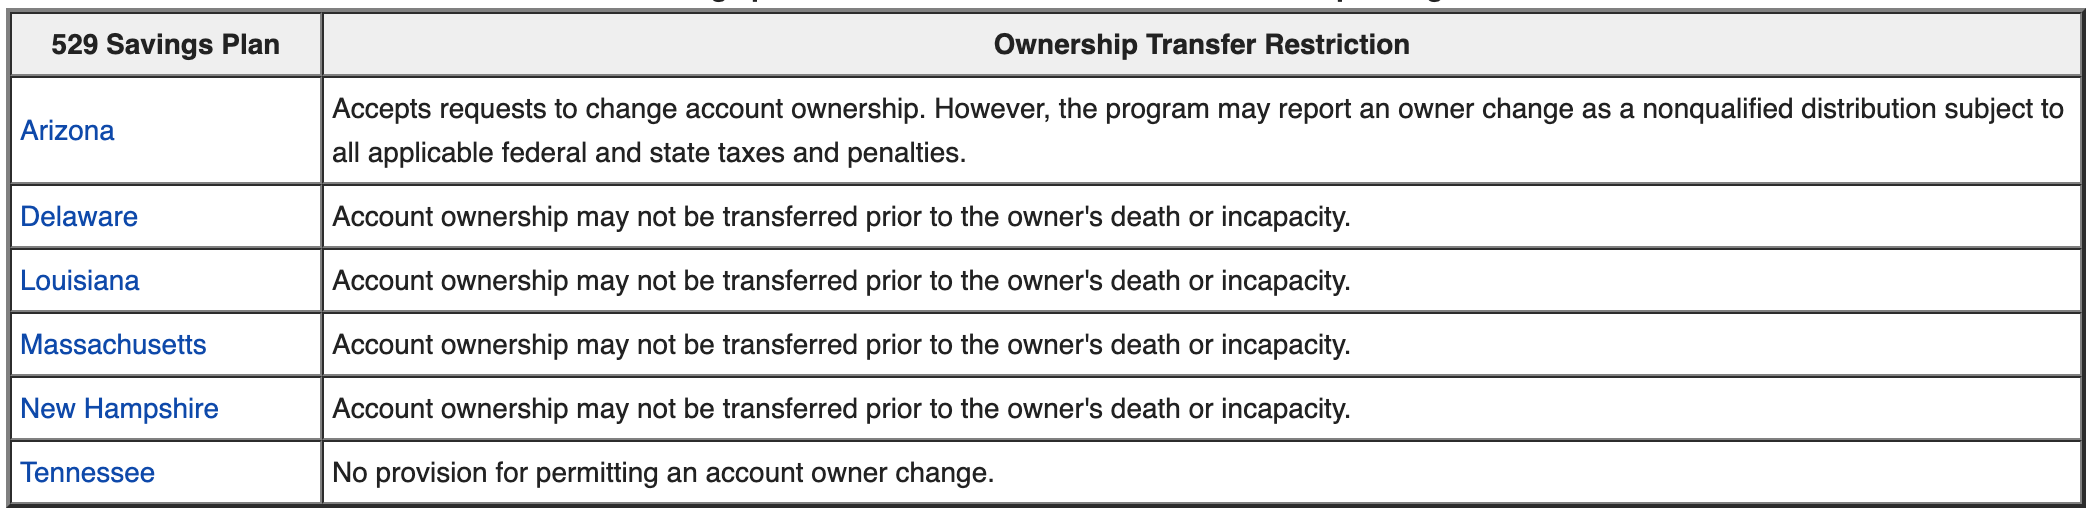 529 Savings plan ownership transfer restrictions by state